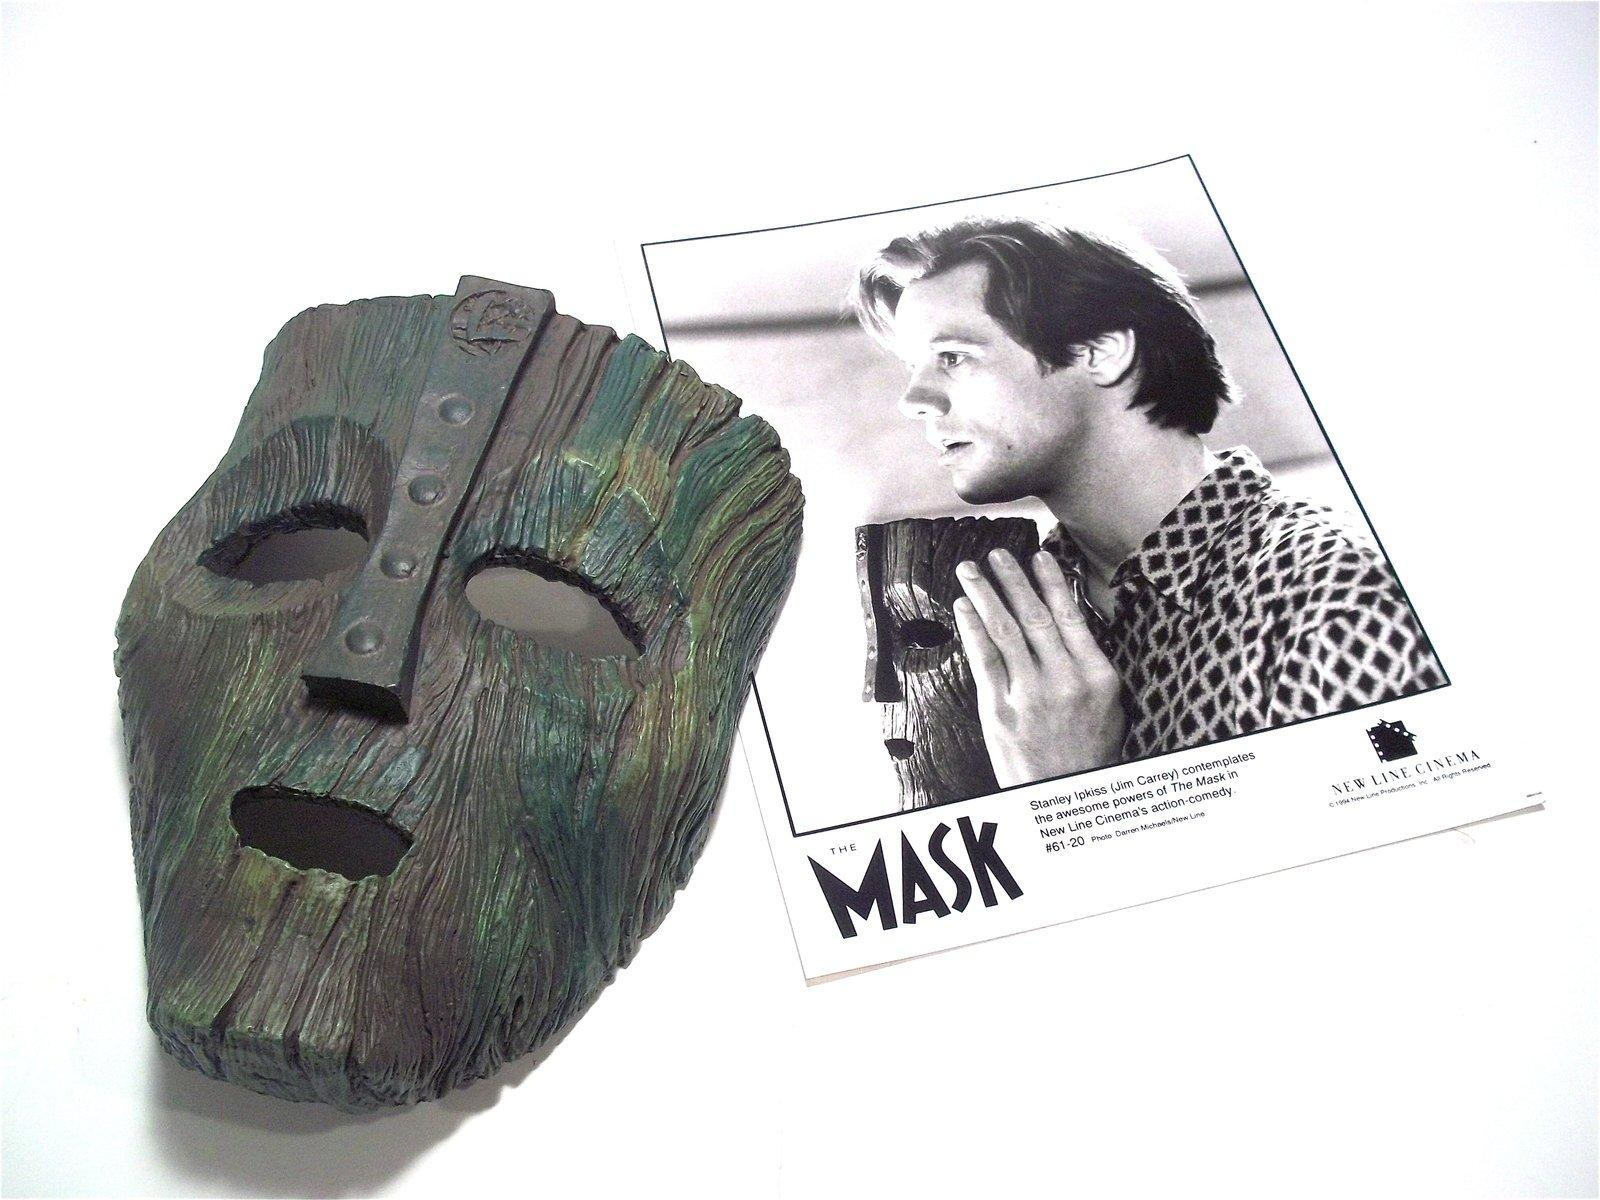 The Mask Loki Mask 1/1 Screen accurate Cast off Original Used